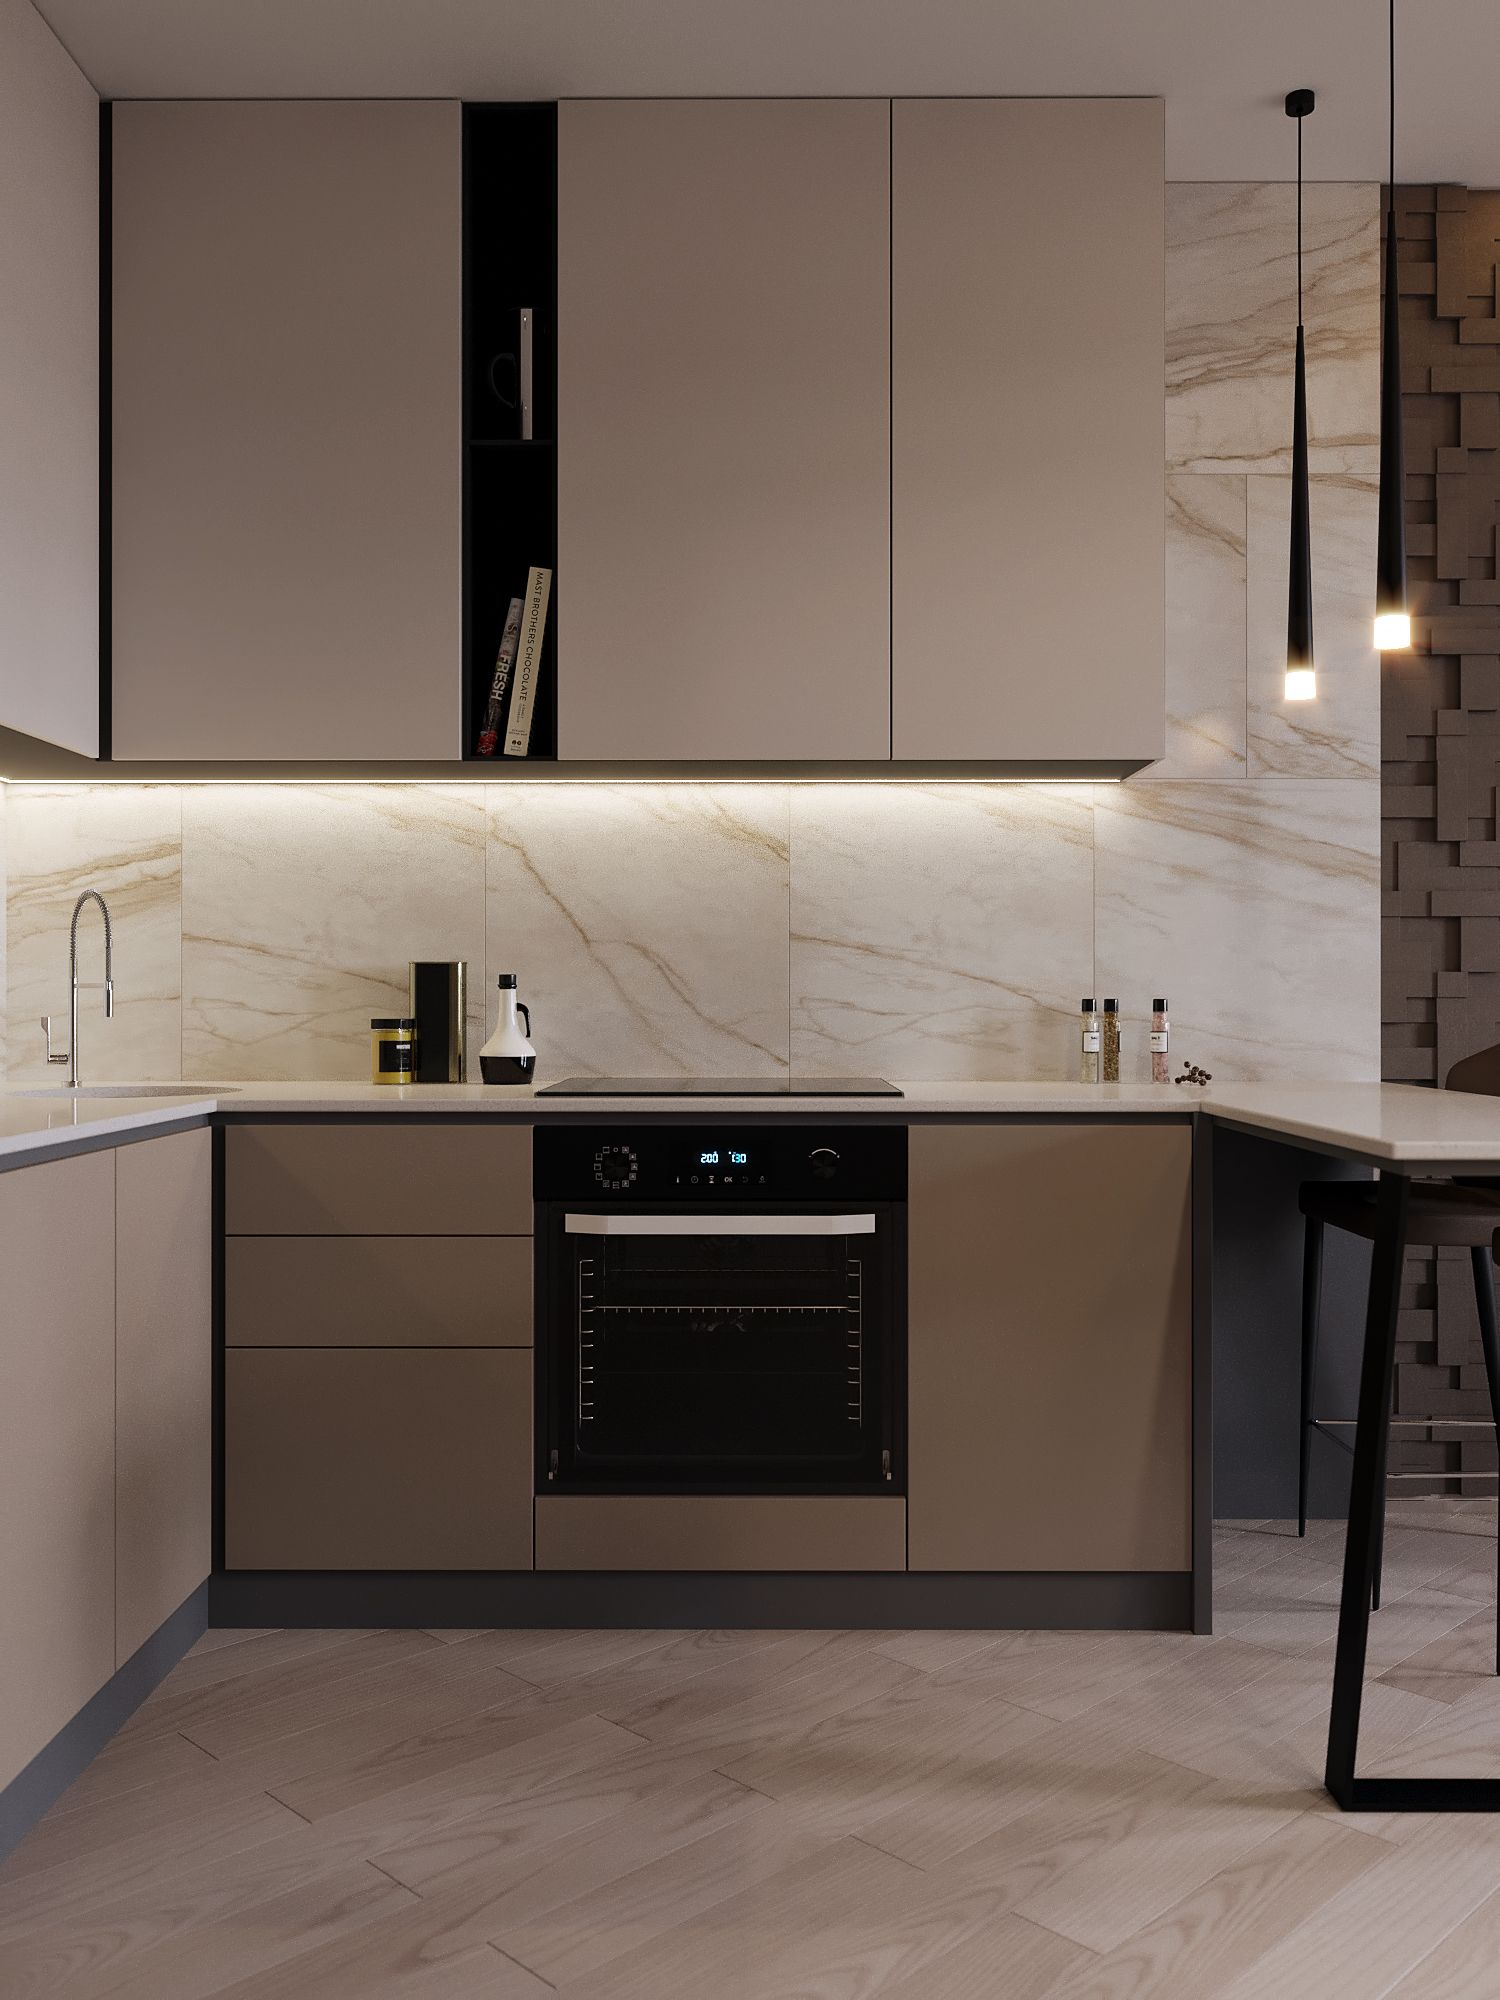 New Project By Z E T W I X. Contemporary KitchensModern KitchensContemporary  Interior DesignInterior ...